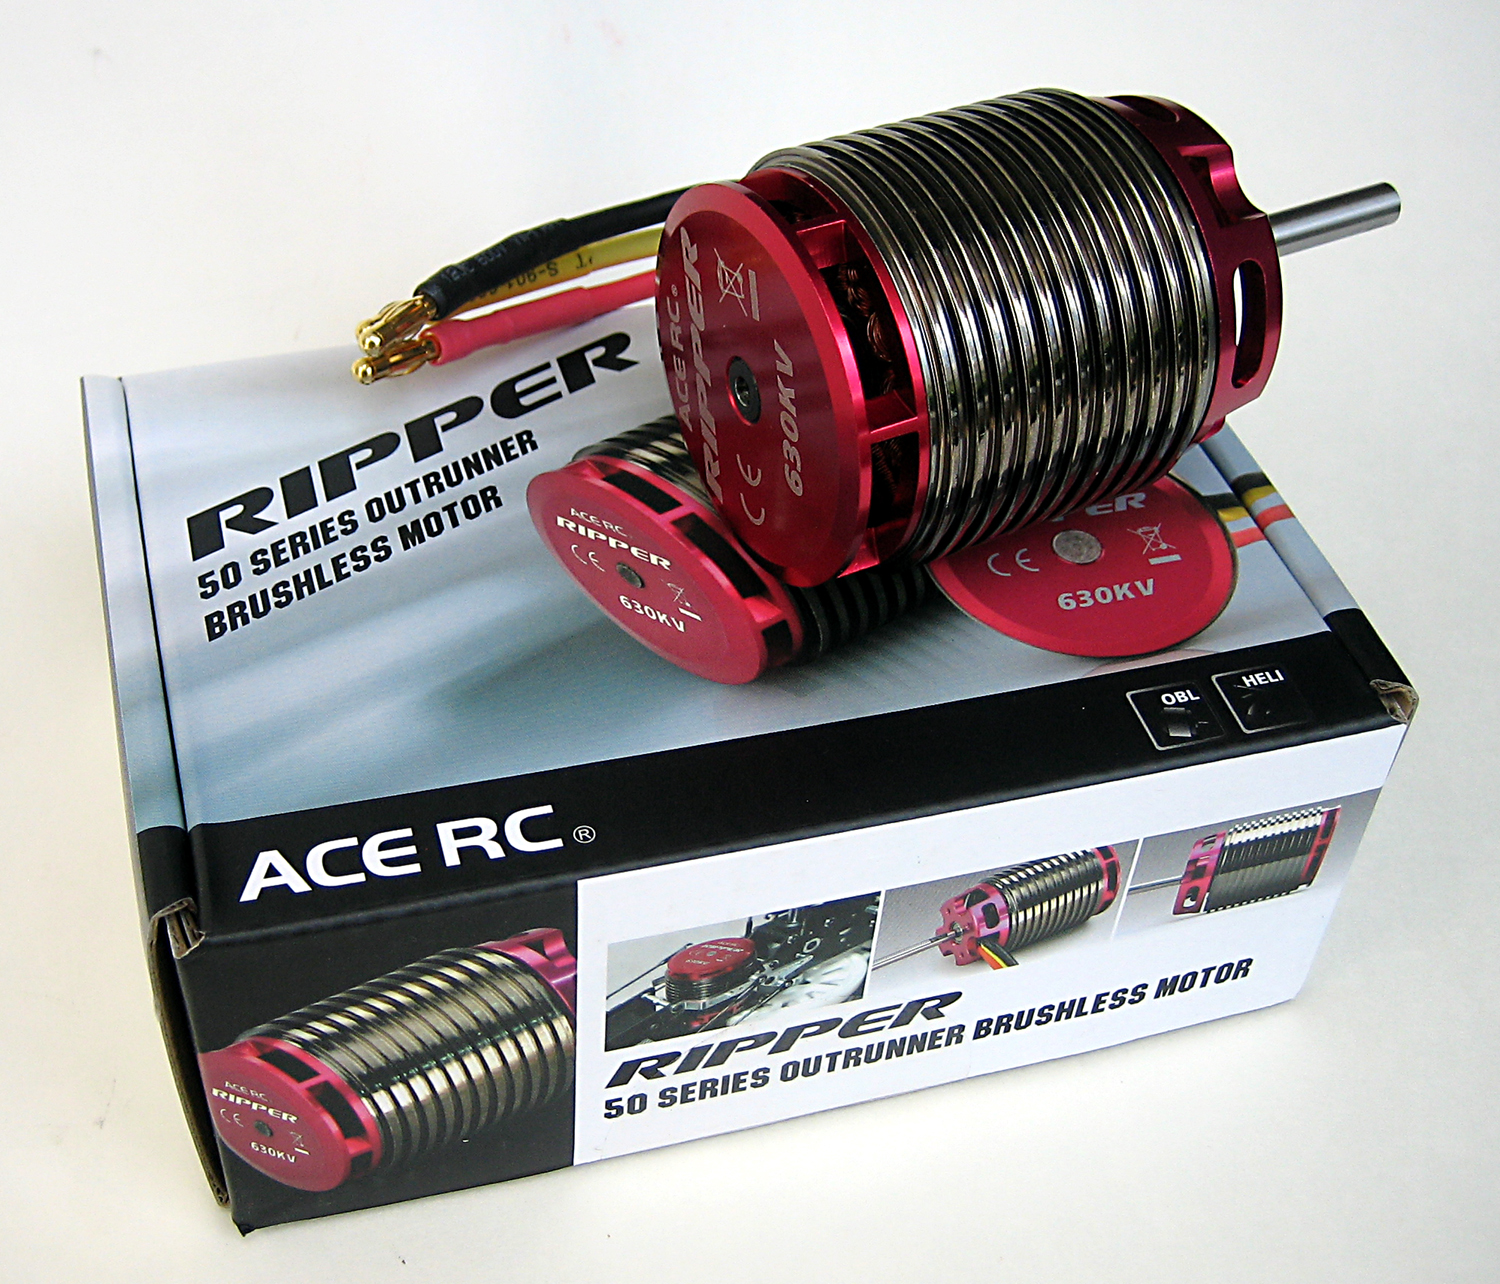 Brushless Helicopter Motor Free Download Class Size Rc Electric 6 Channel 3d Rtf The Exceedrc G2 Ripper Obl 44 49 50 Series Motors Model Dc At